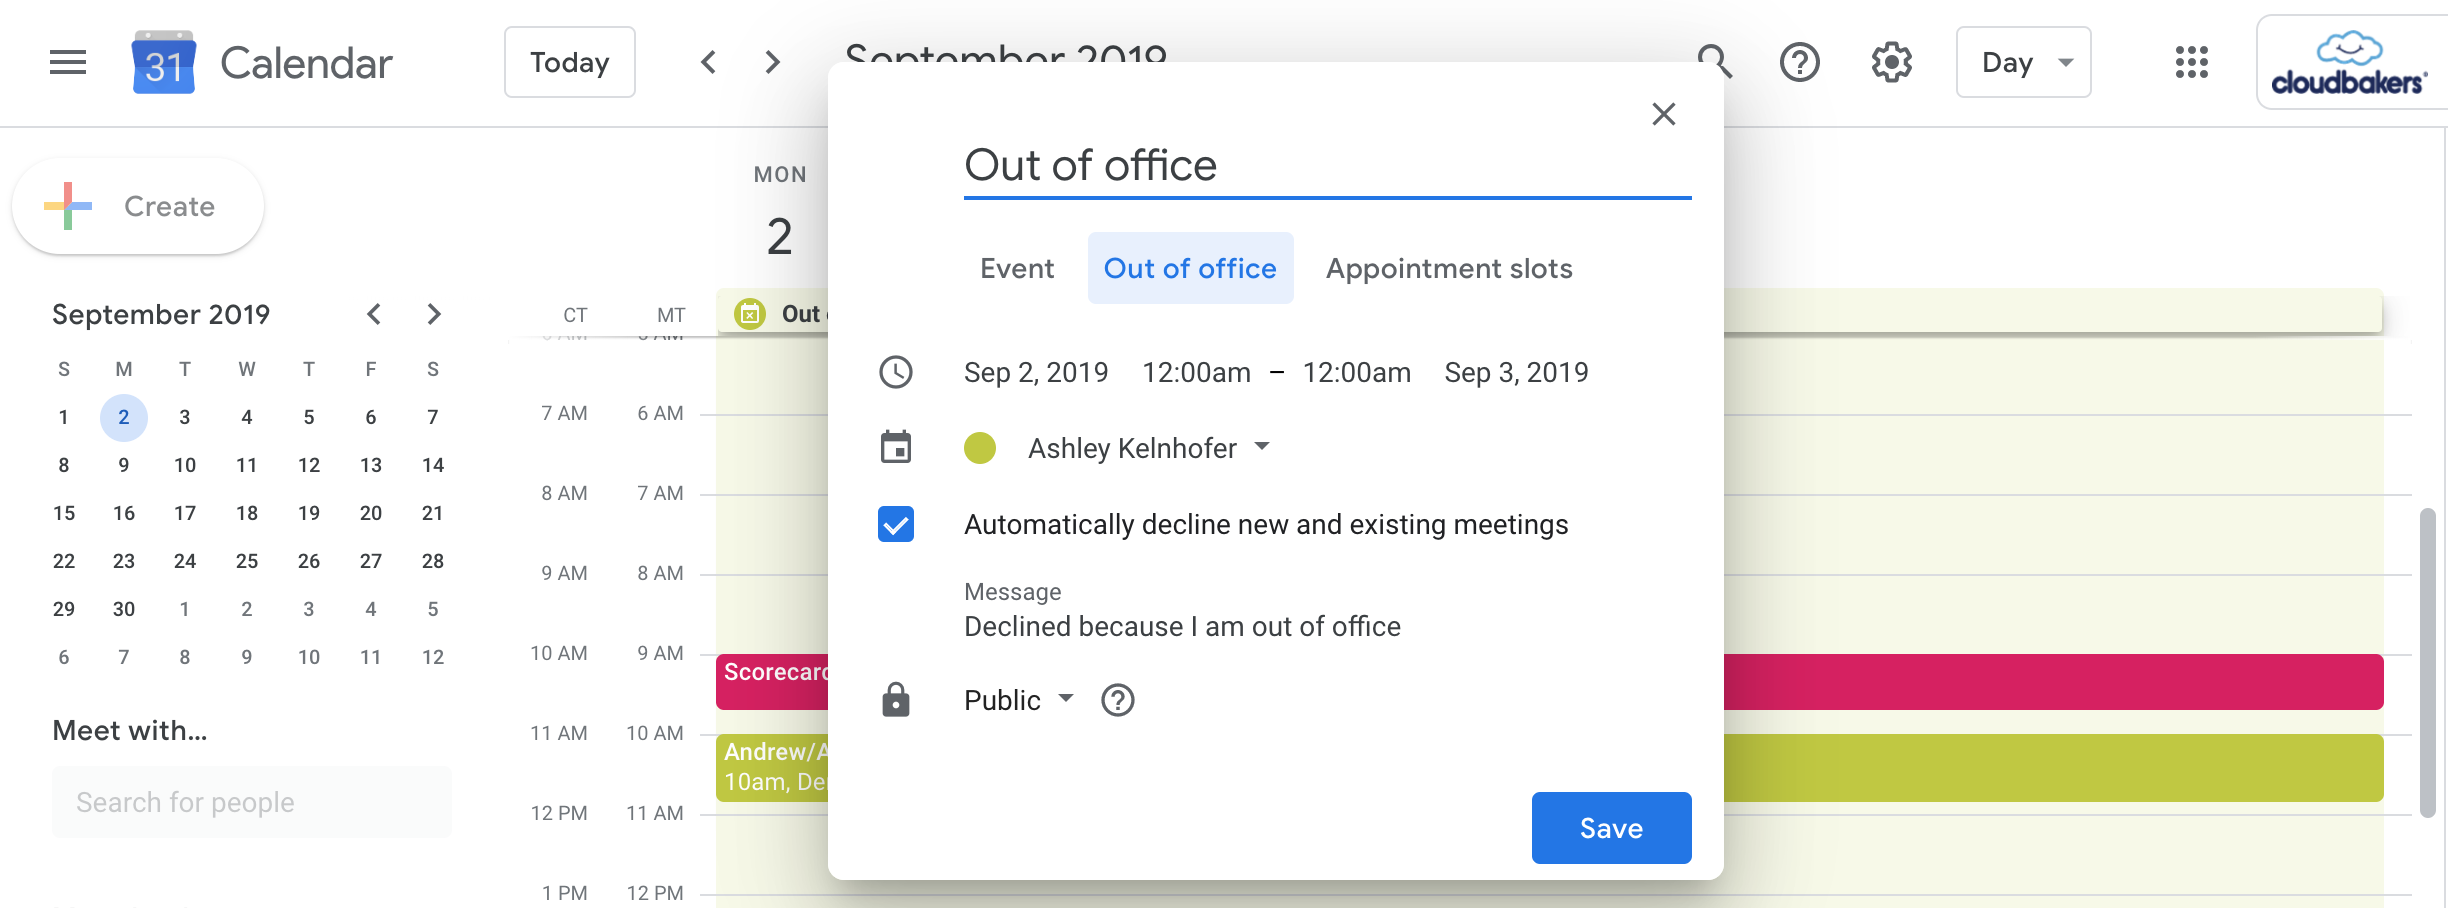 Out of Office Event Type in Google Calendar